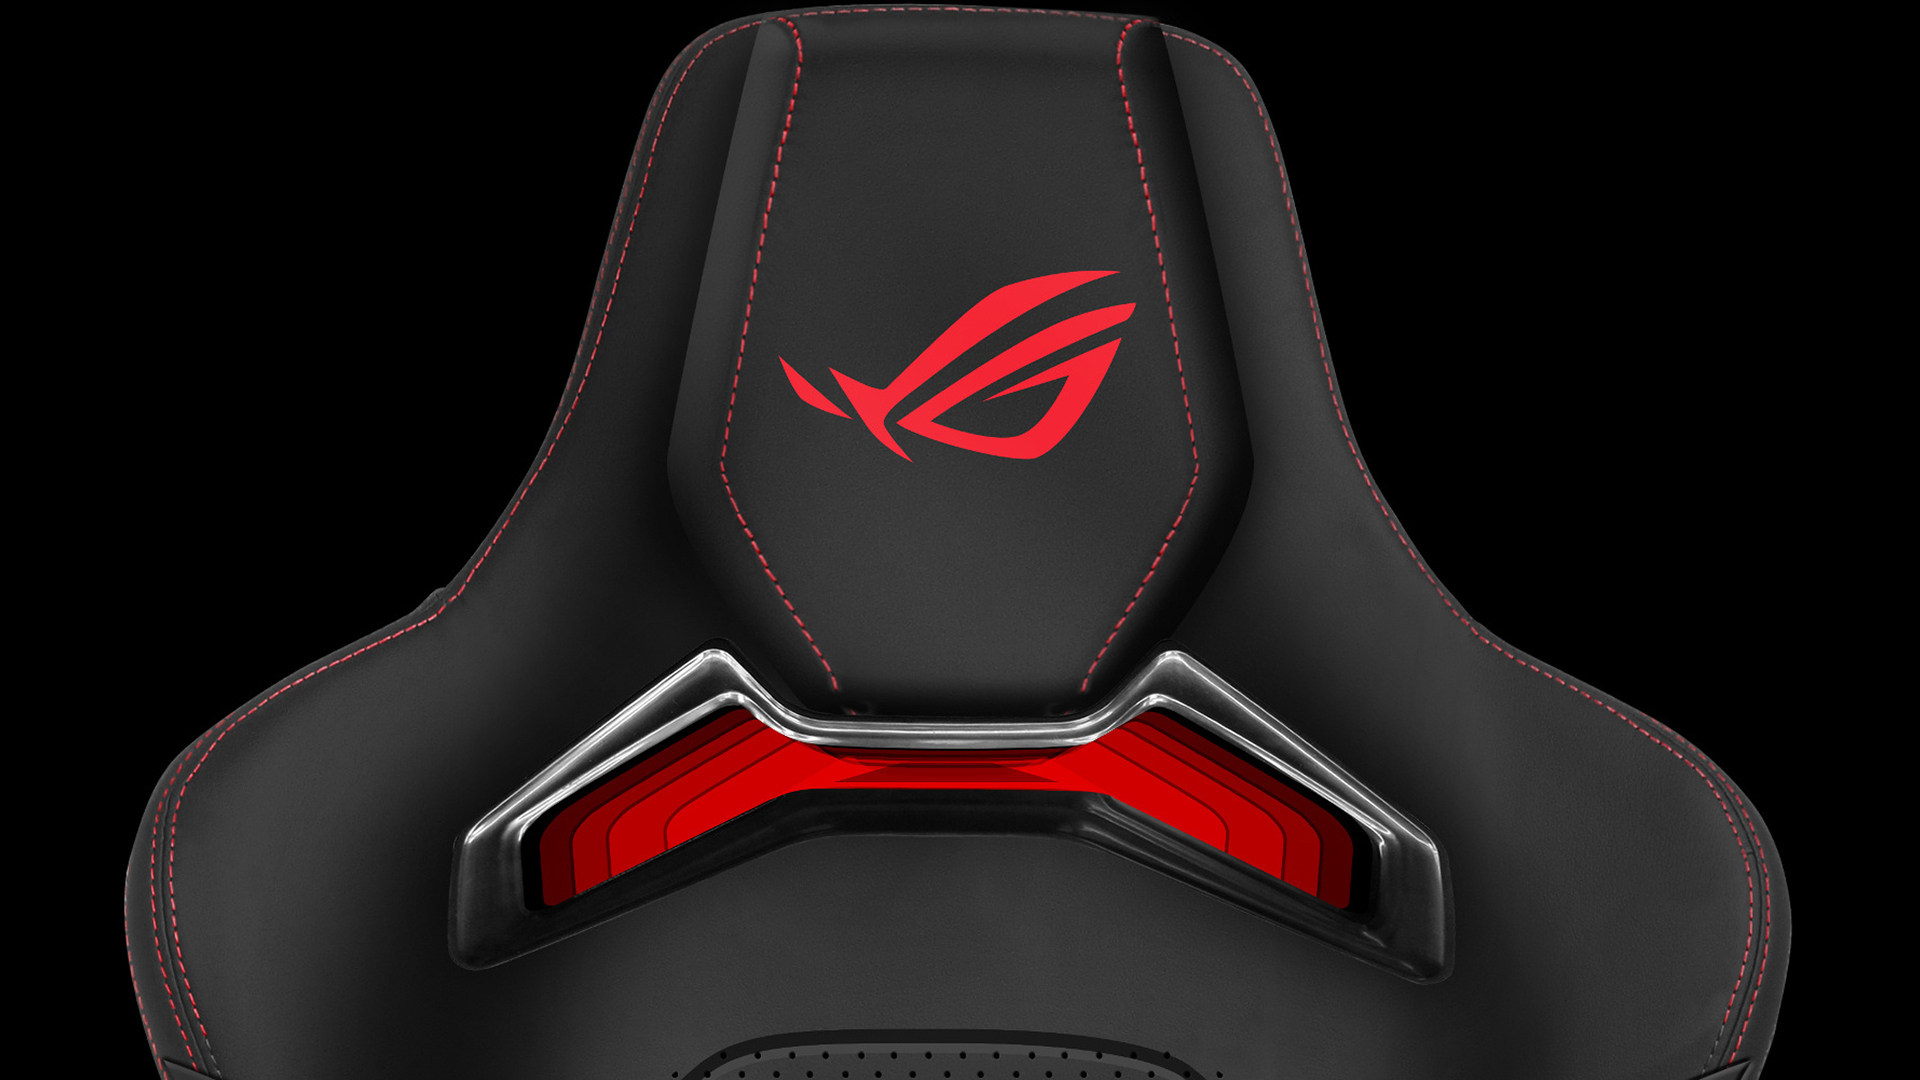 asus rog chariot core rgb chair 01